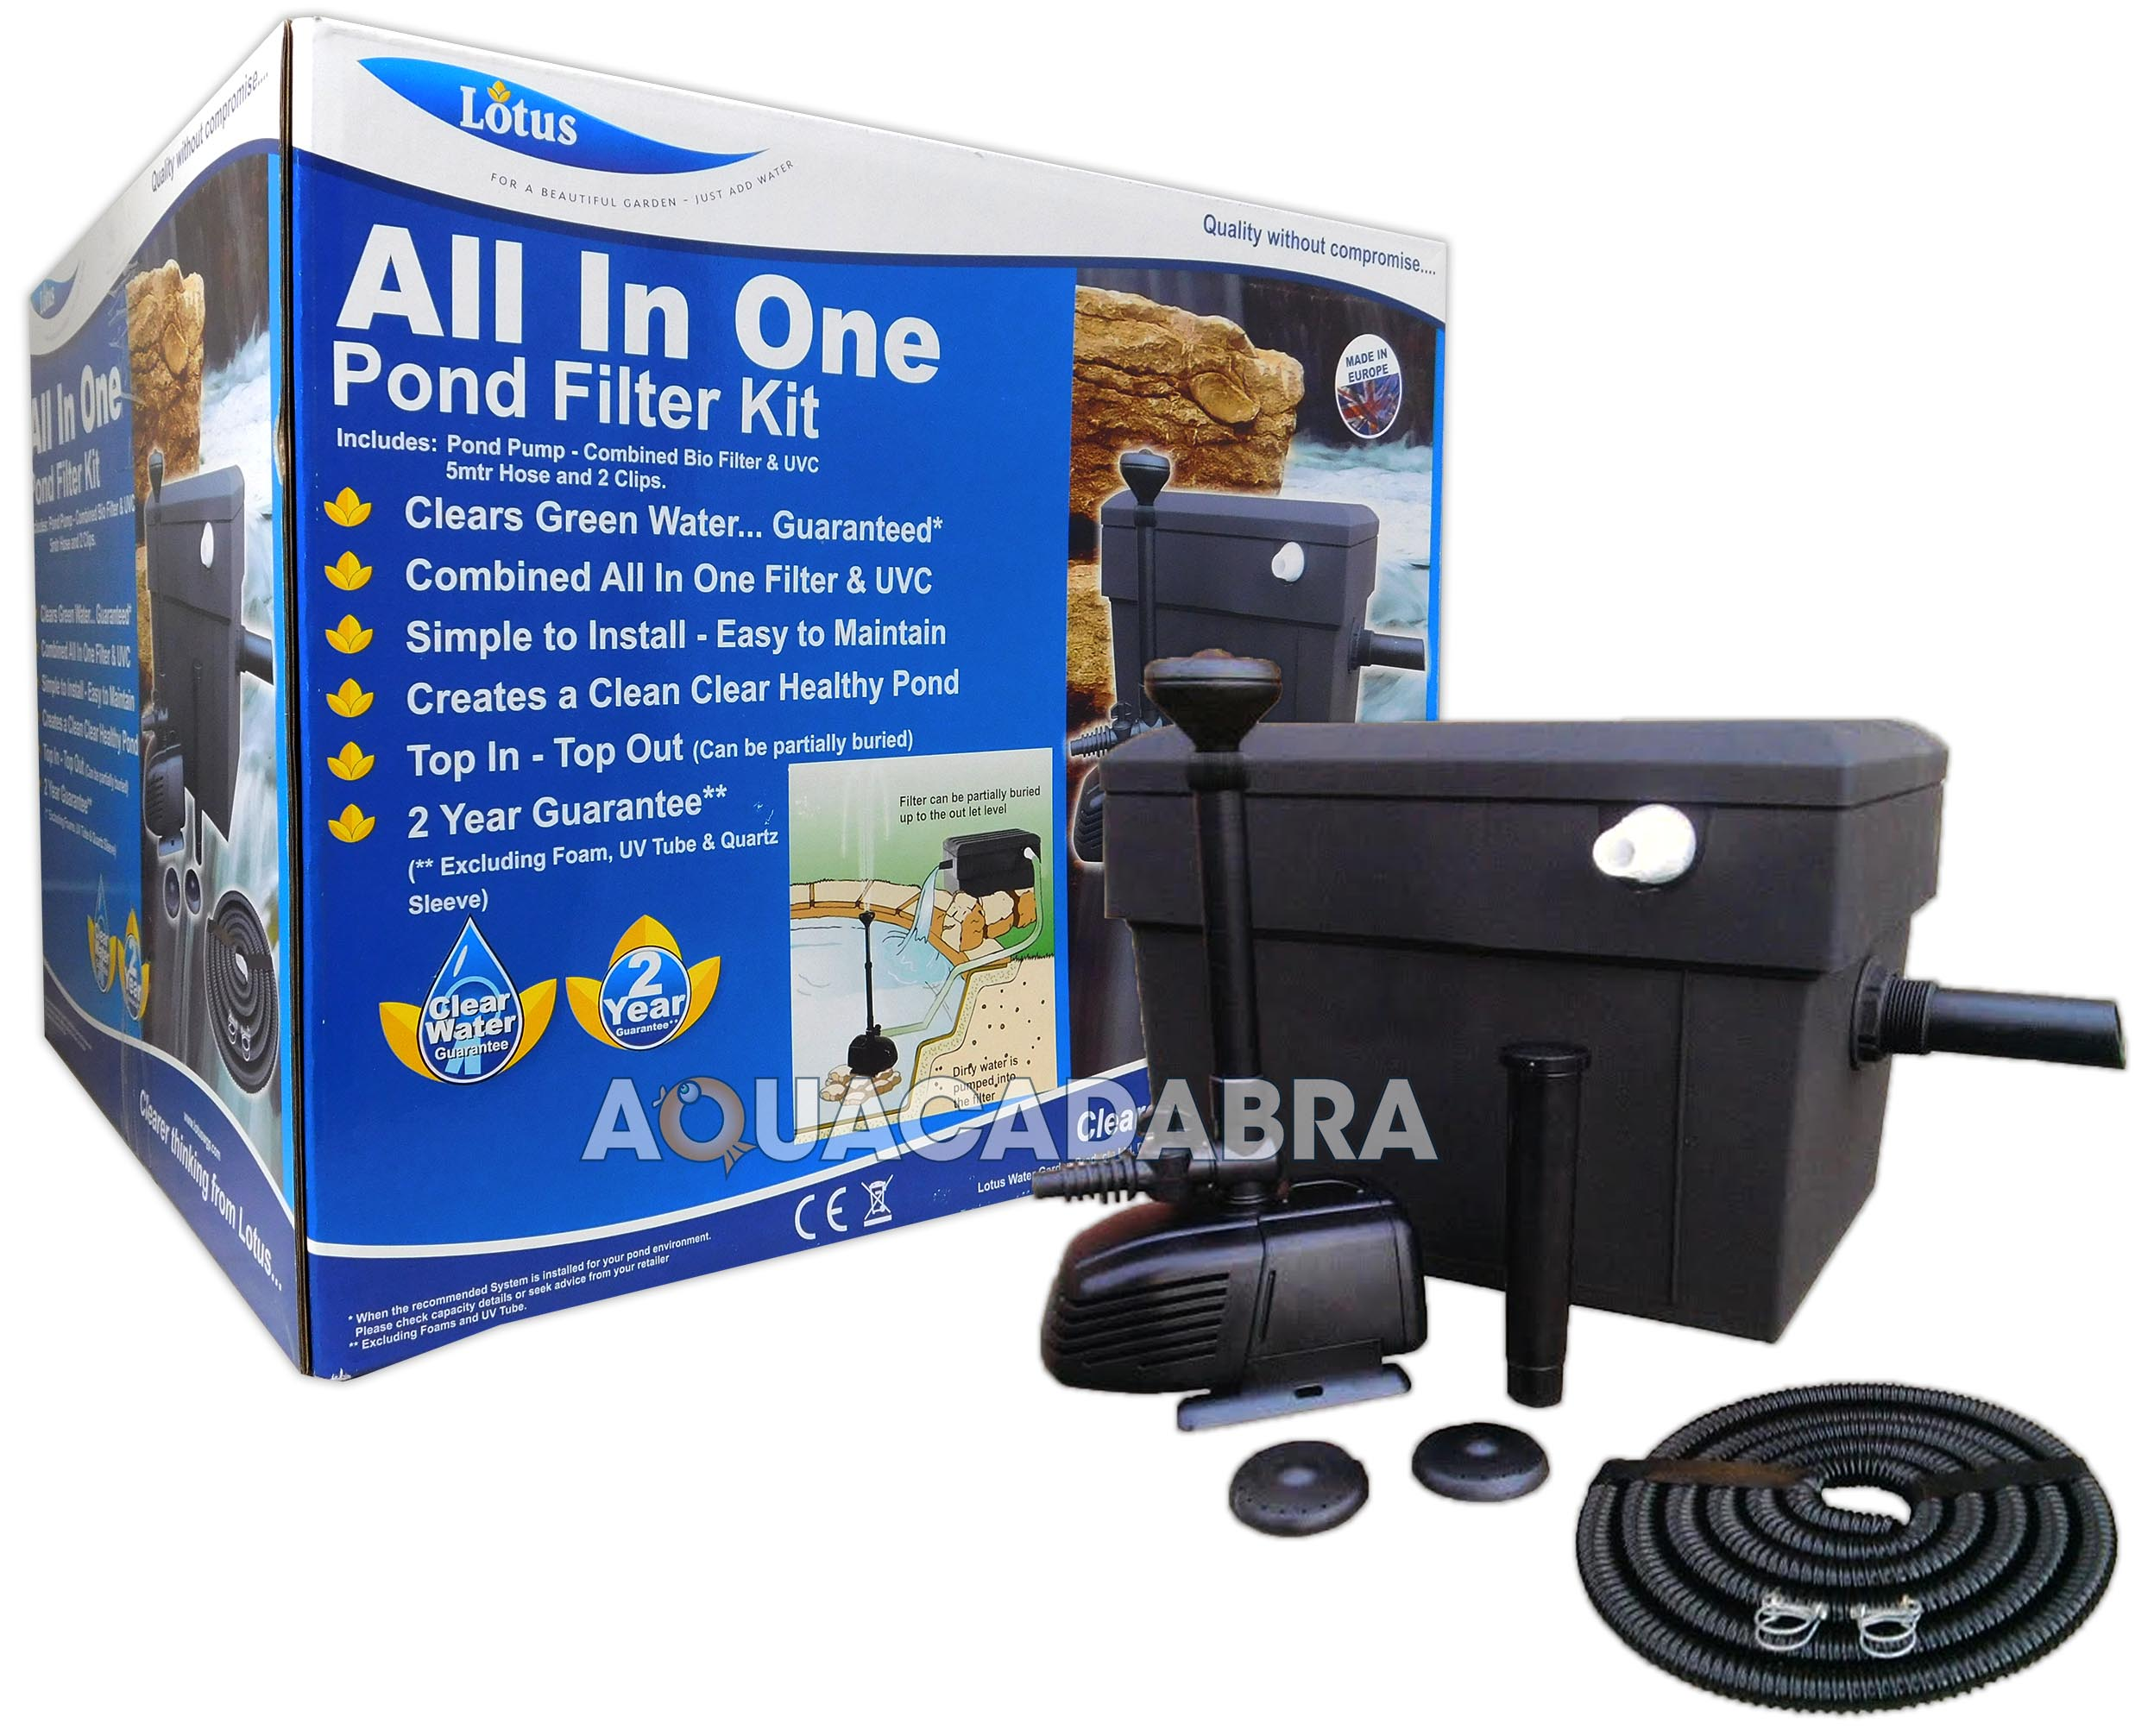 Lotus all in one pond filter kit otter 4500 litre pump bio for Best all in one pond pump and filter